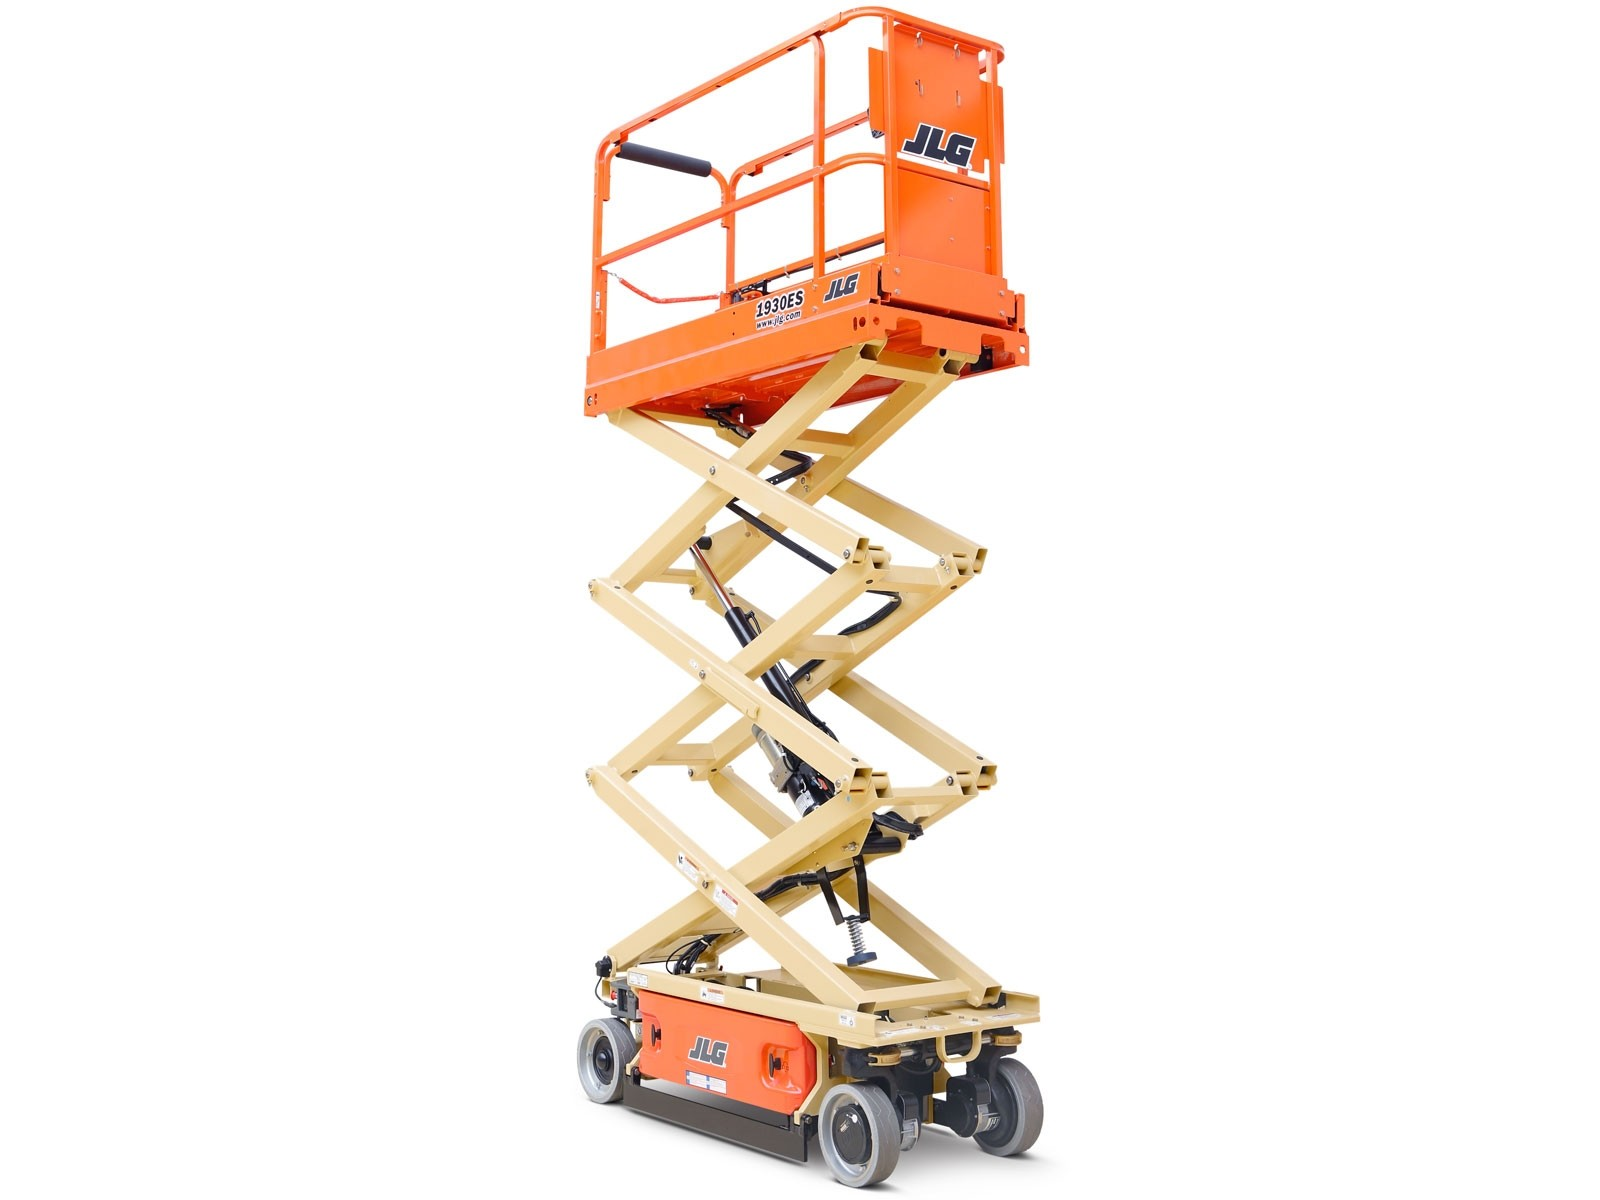 25FT / 7.72M Electric Scissor Lift